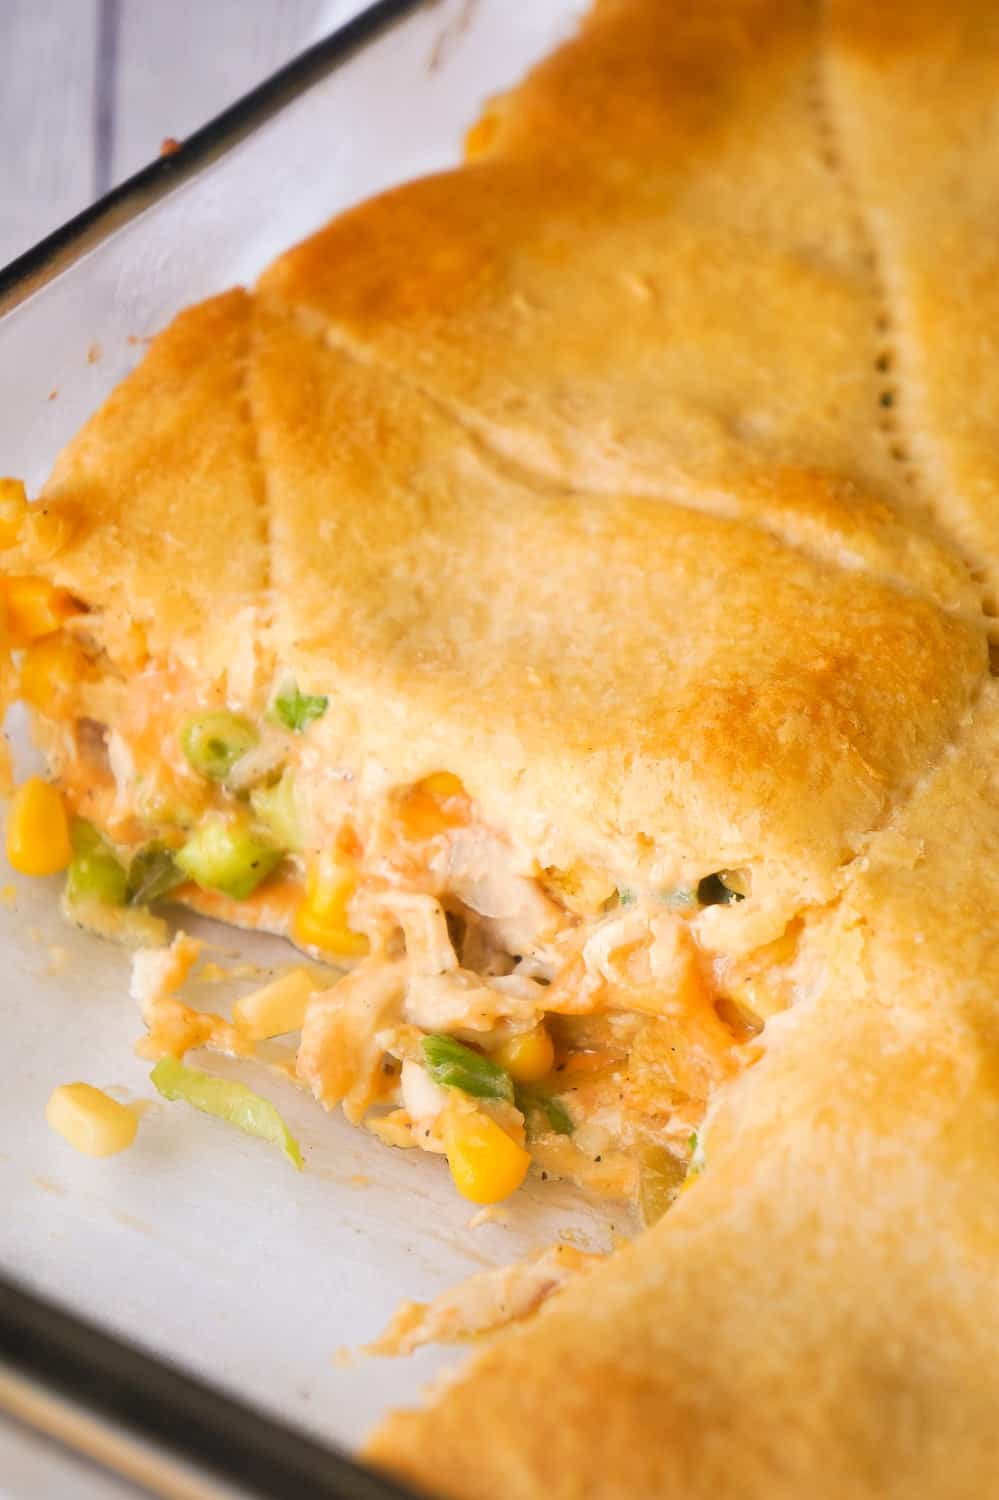 Fritos Chicken Casserole is an easy dinner recipe using precooked rotisserie chicken. This delicious casserole is loaded with shredded chicken, corn chips, green chilies and cheddar cheese then topped with Pillsbury Crescent Roll dough.